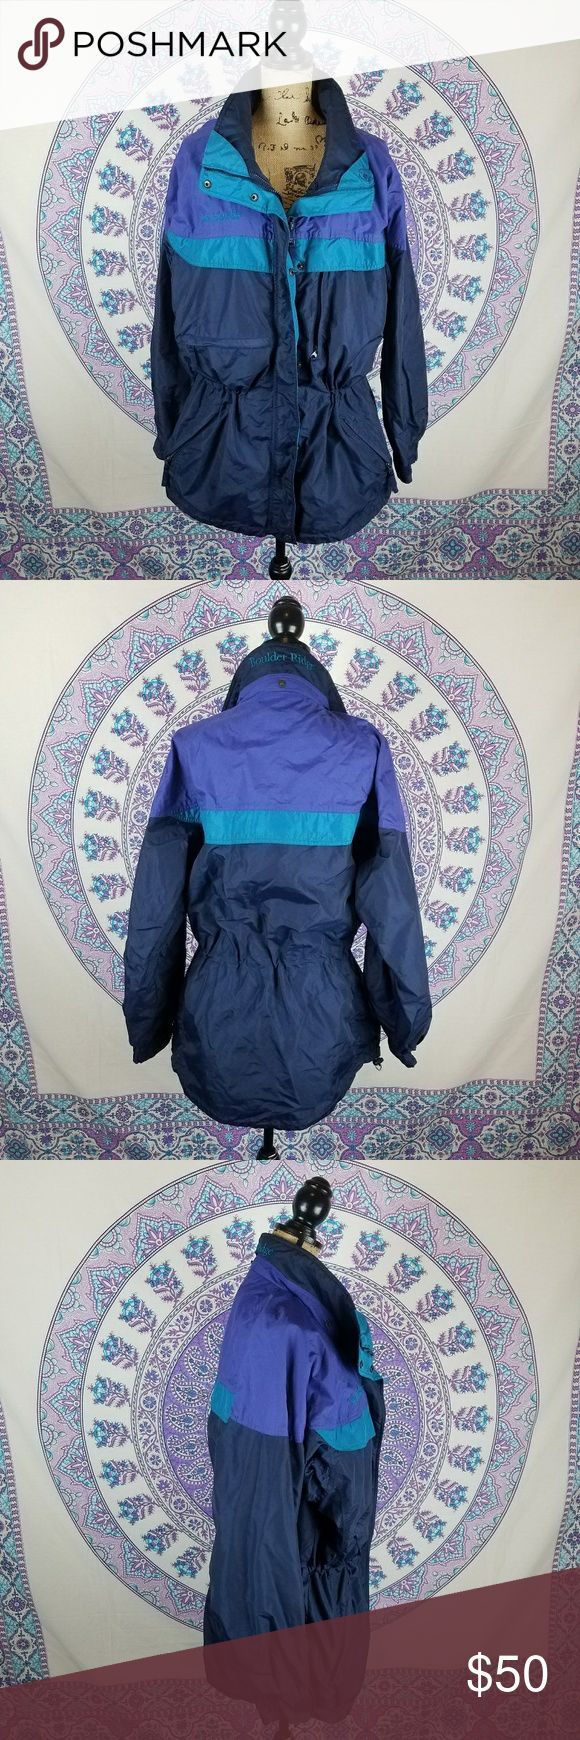 Vintage women's Columbia ski jacket Vintage women's Columbia ski jacket, size women's large, slight tear next to zipper but the zipper still works, missing hood, 2 breast pockets, cinched at waist, hook in pocket for ski lift ticket Columbia Jackets & Coats